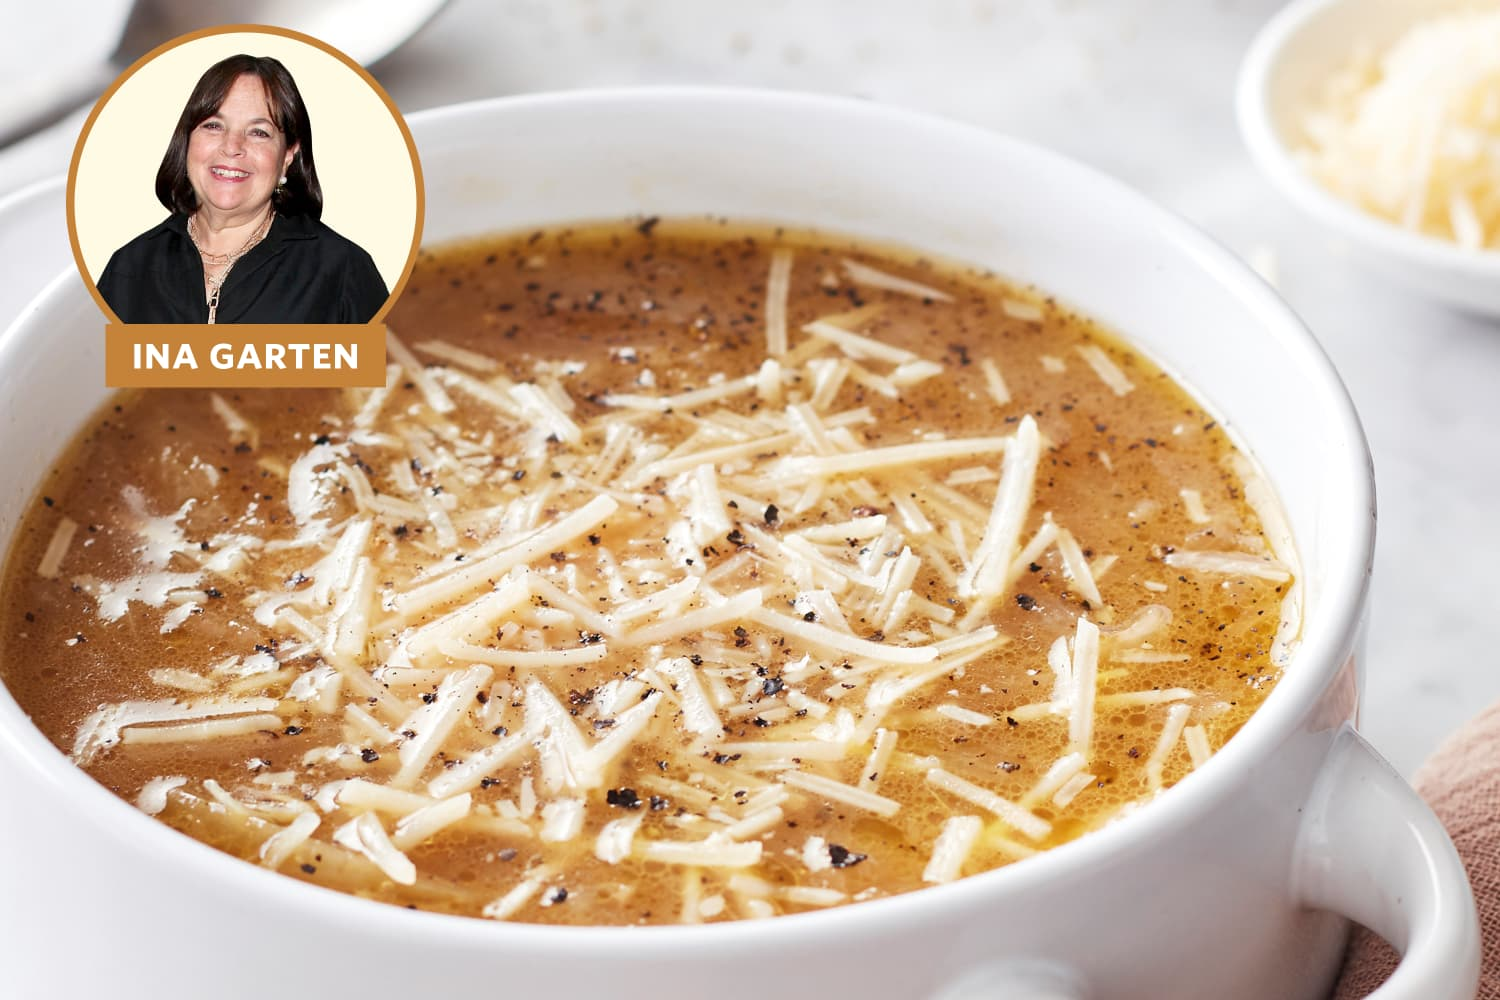 Ina Garten's French Onion Soup Recipe Has One Fatal Flaw